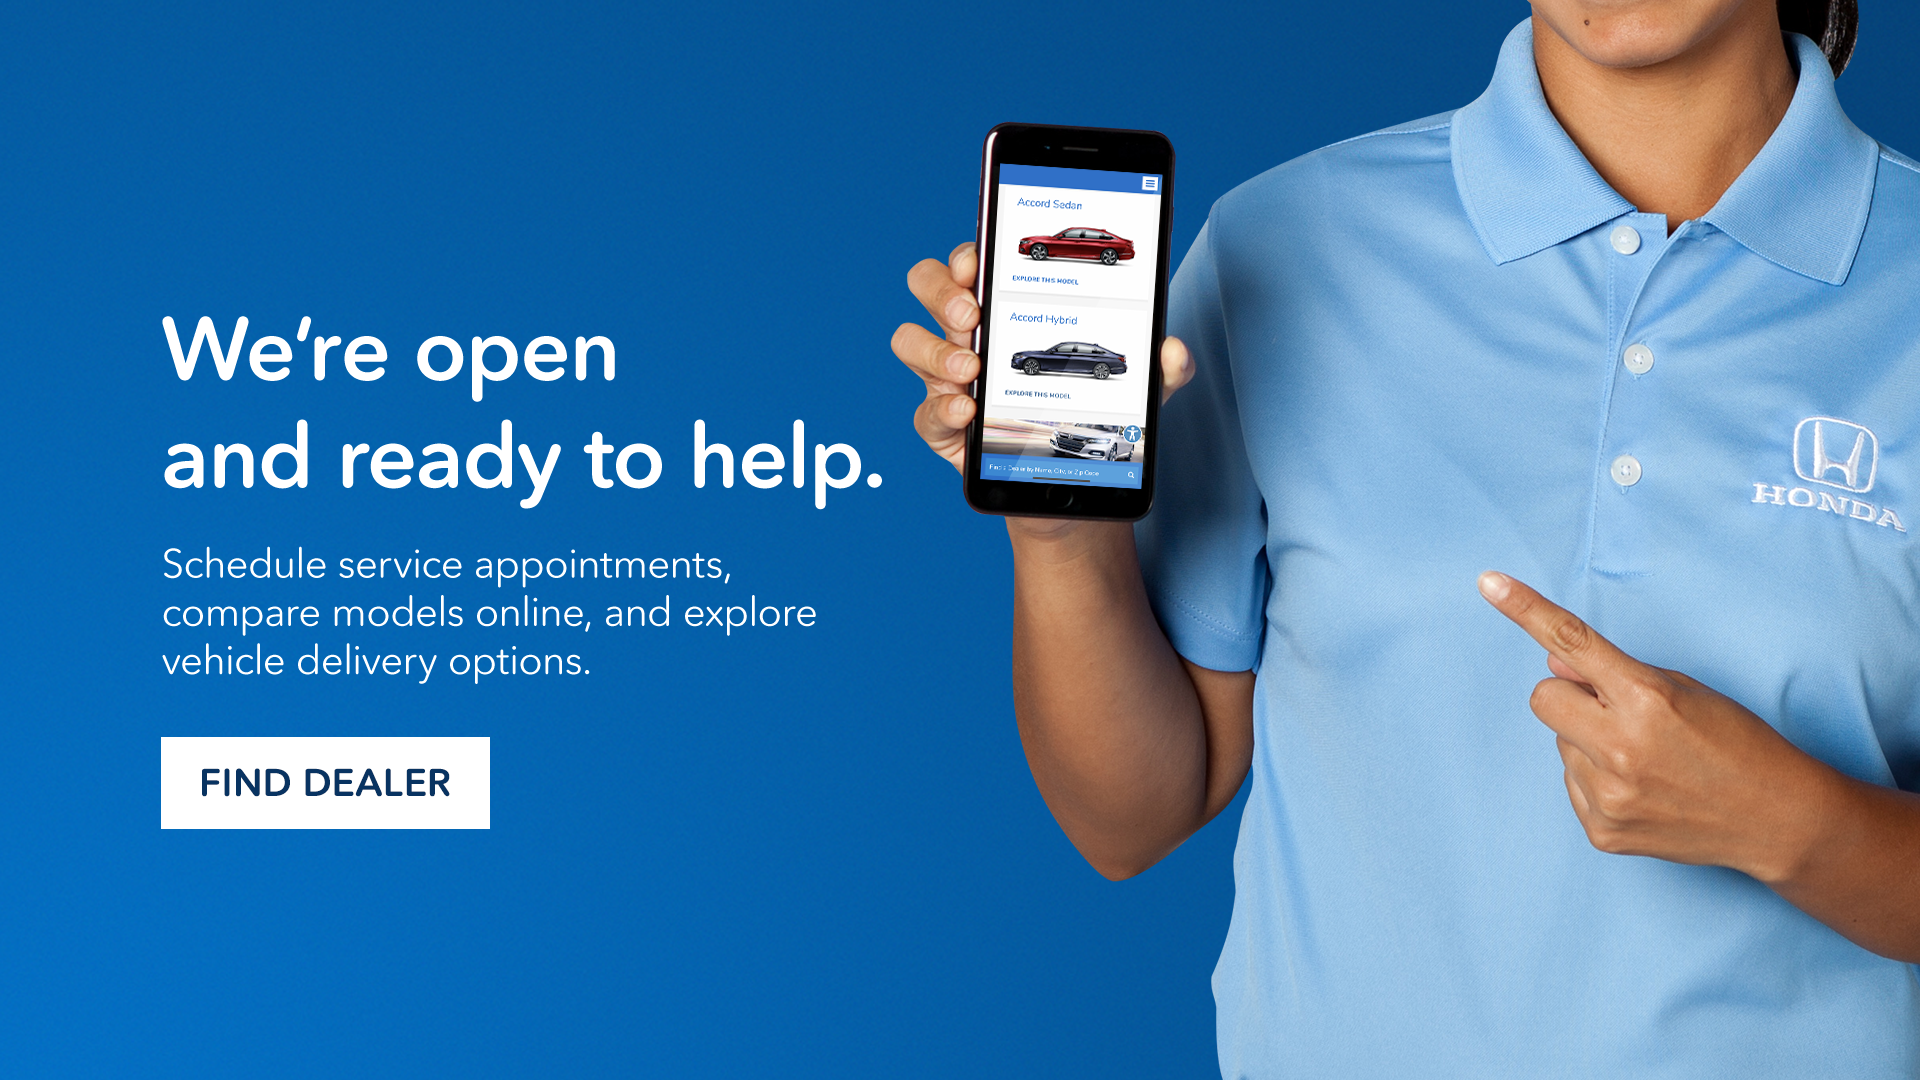 We're open and ready to help. Schedule Service appointments, compare models, and explore vehicle delivery online.